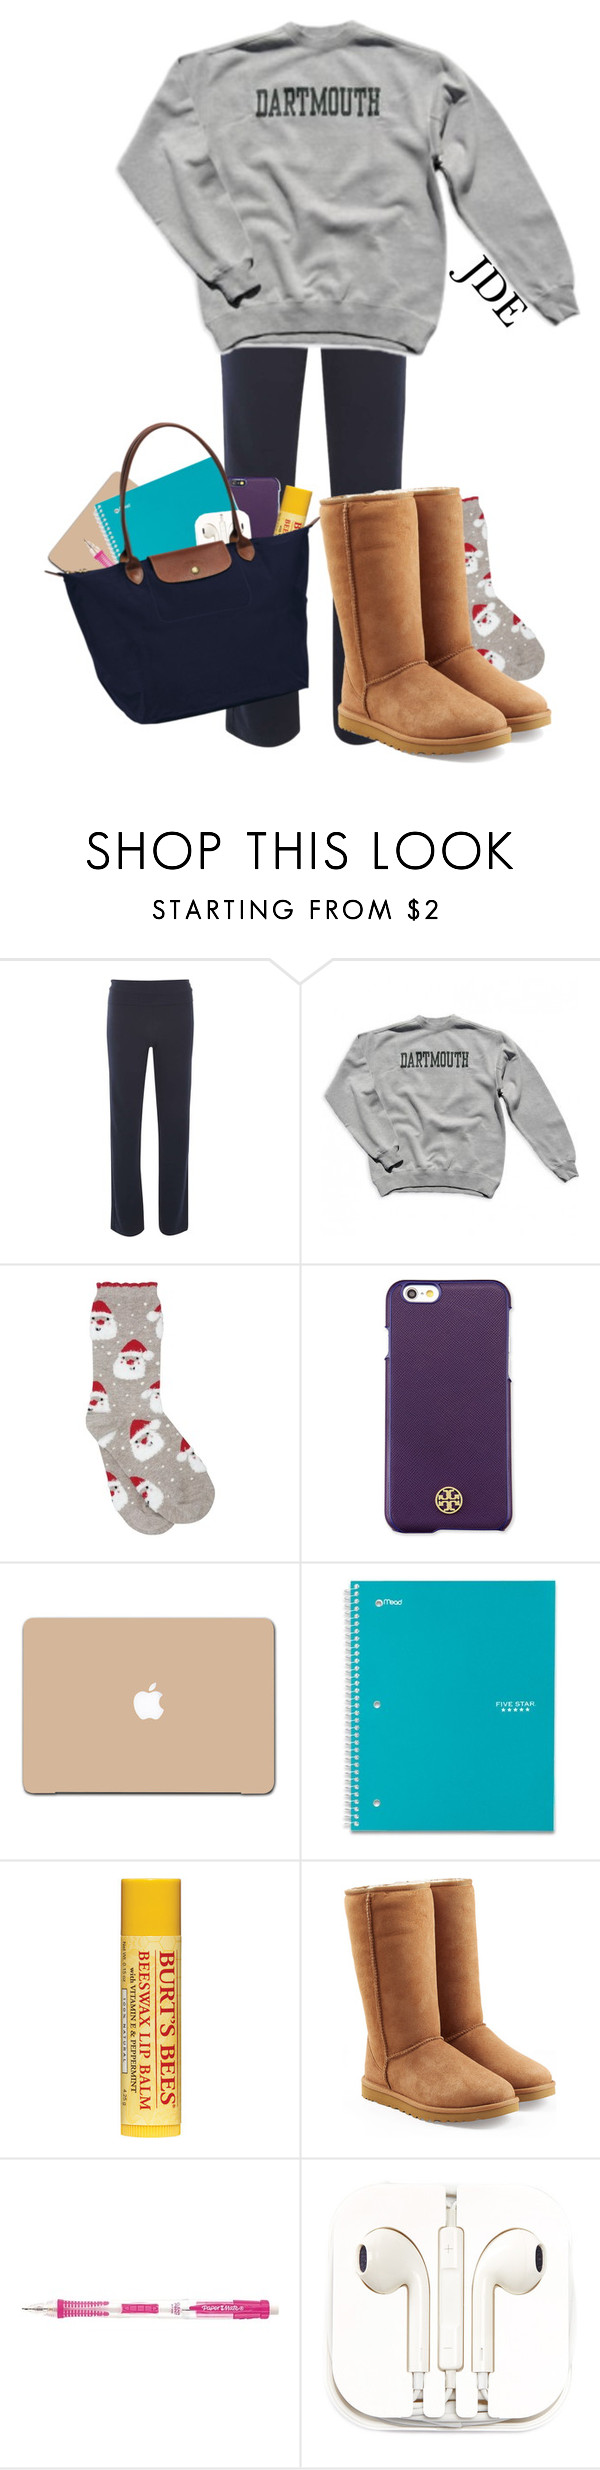 """""""8 am class like...."""" by jane-dodge ❤ liked on Polyvore featuring Dorothy Perkins, M&Co, Tory Burch, UGG Australia, PhunkeeTree, Longchamp, women's clothing, women's fashion, women and female"""